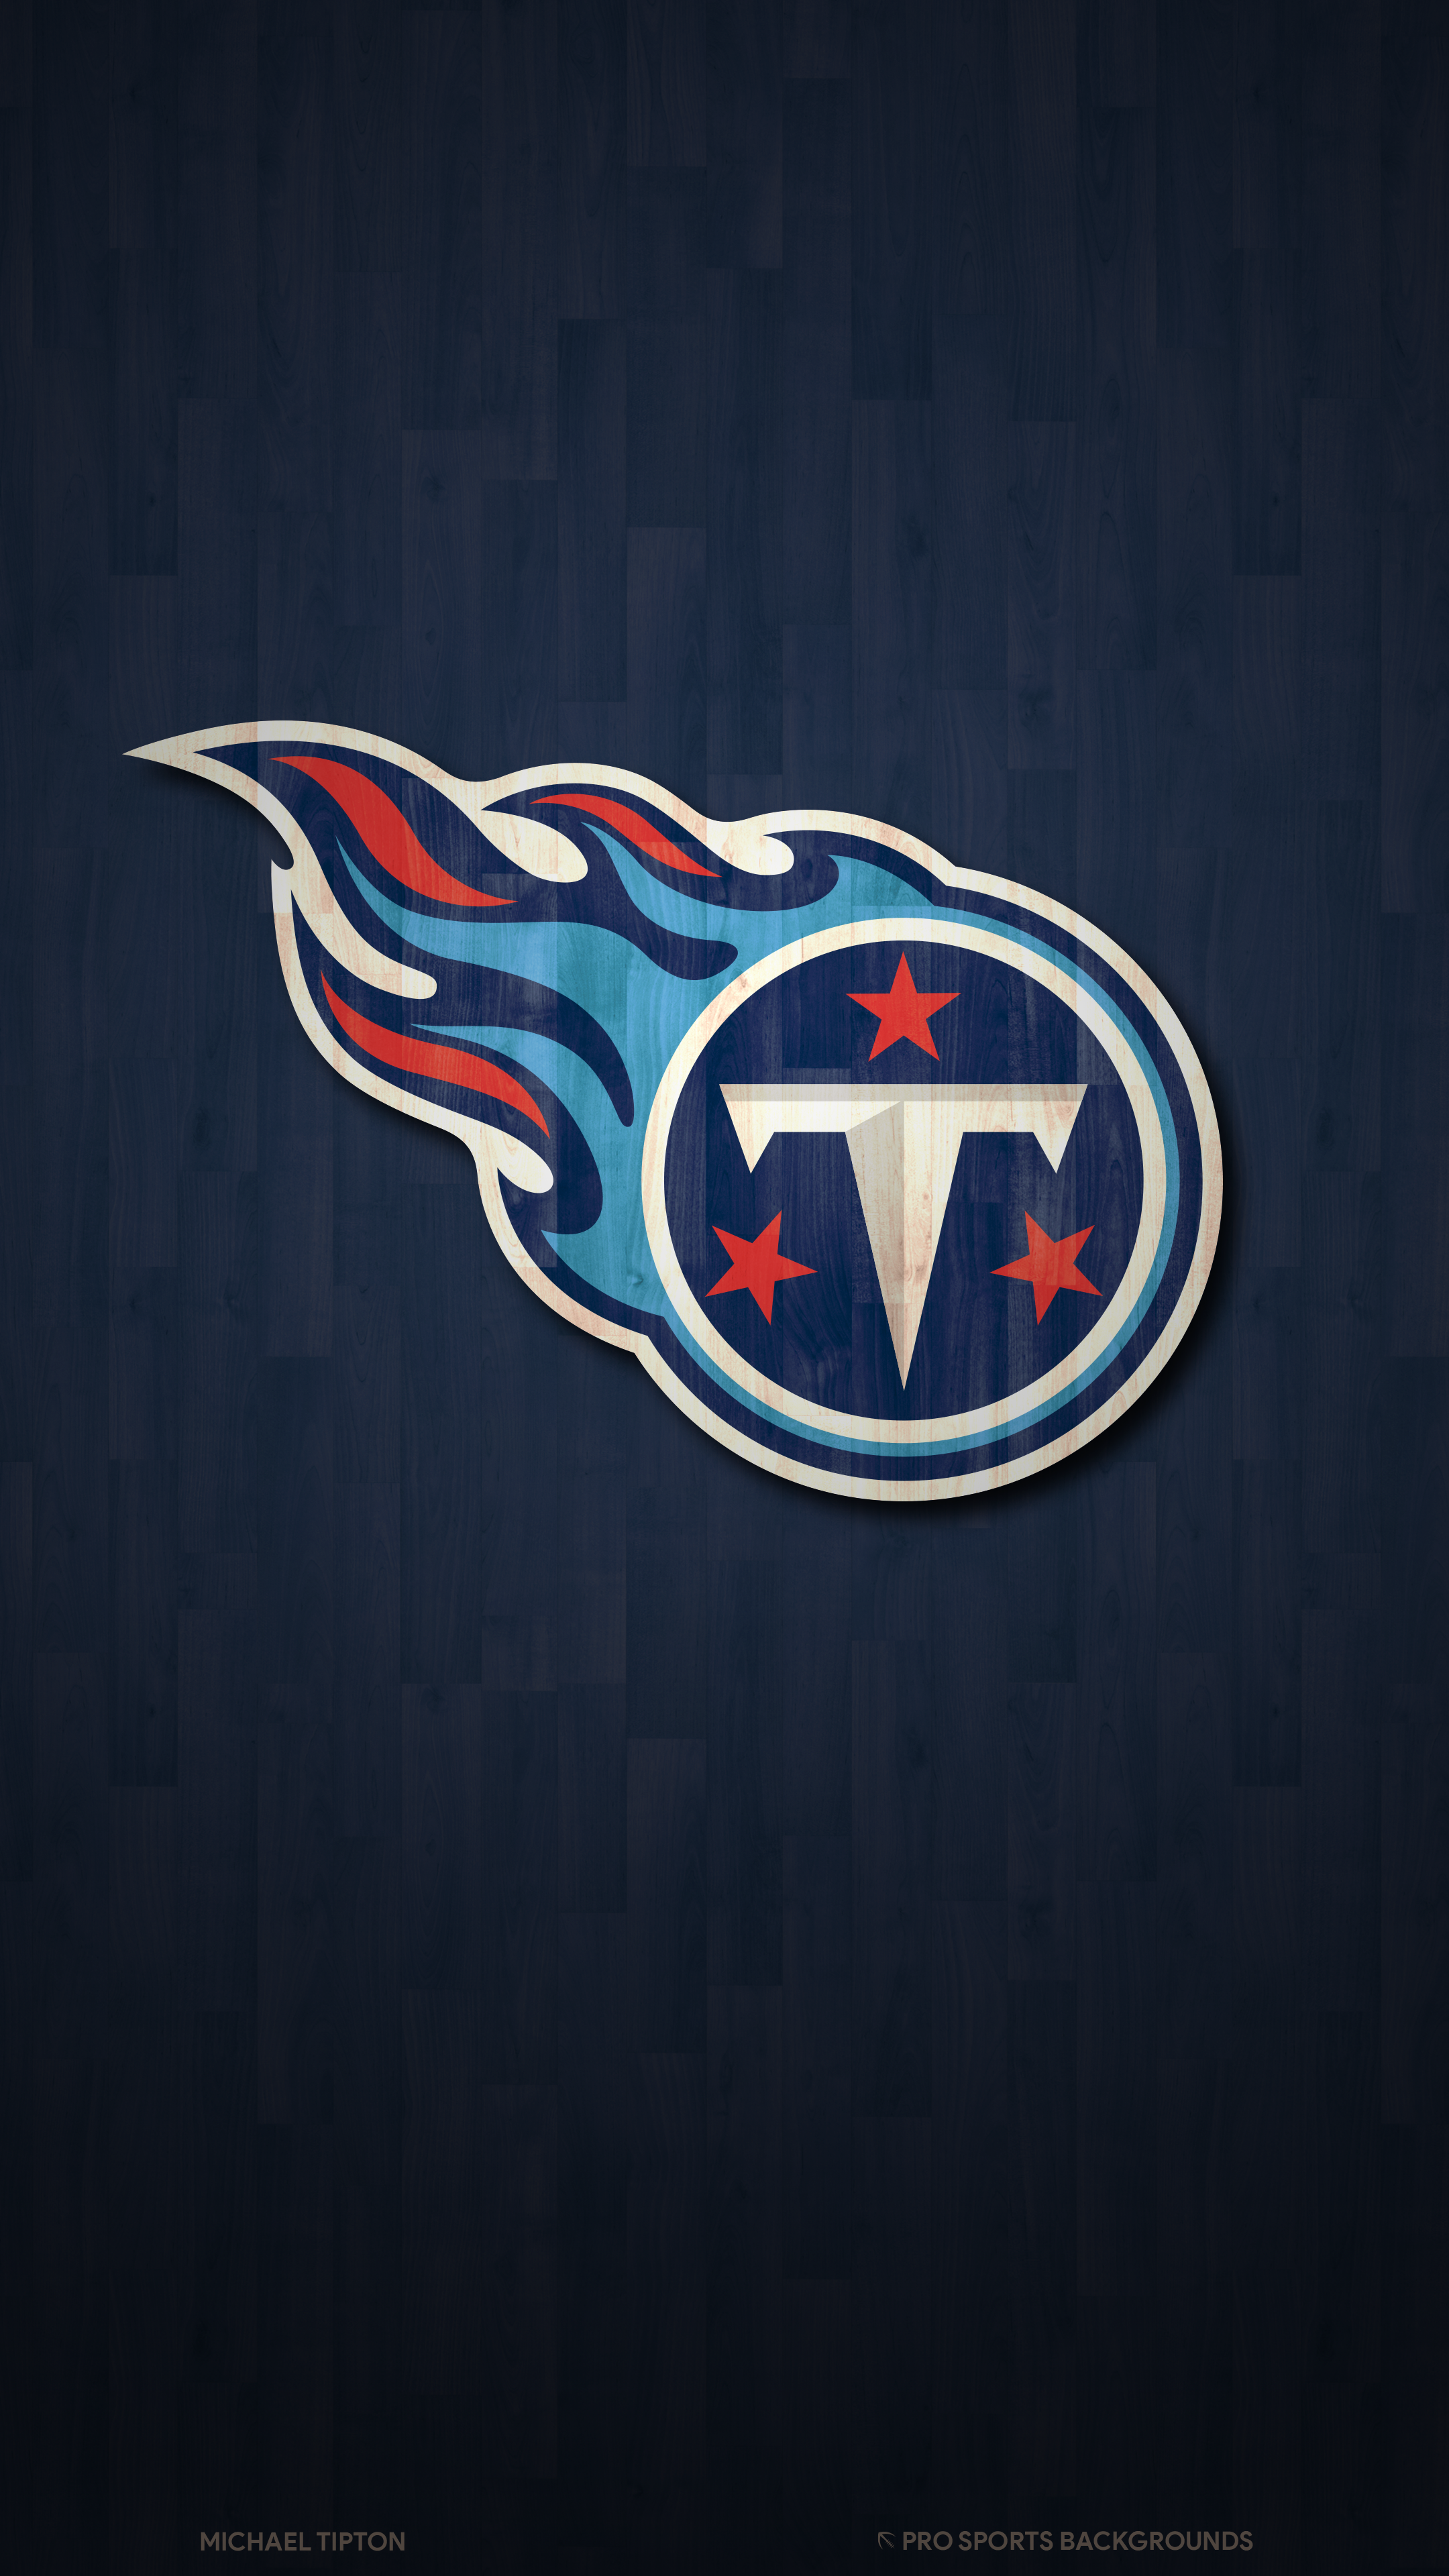 2020 Tennessee Titans Wallpapers Pro Sports Backgrounds